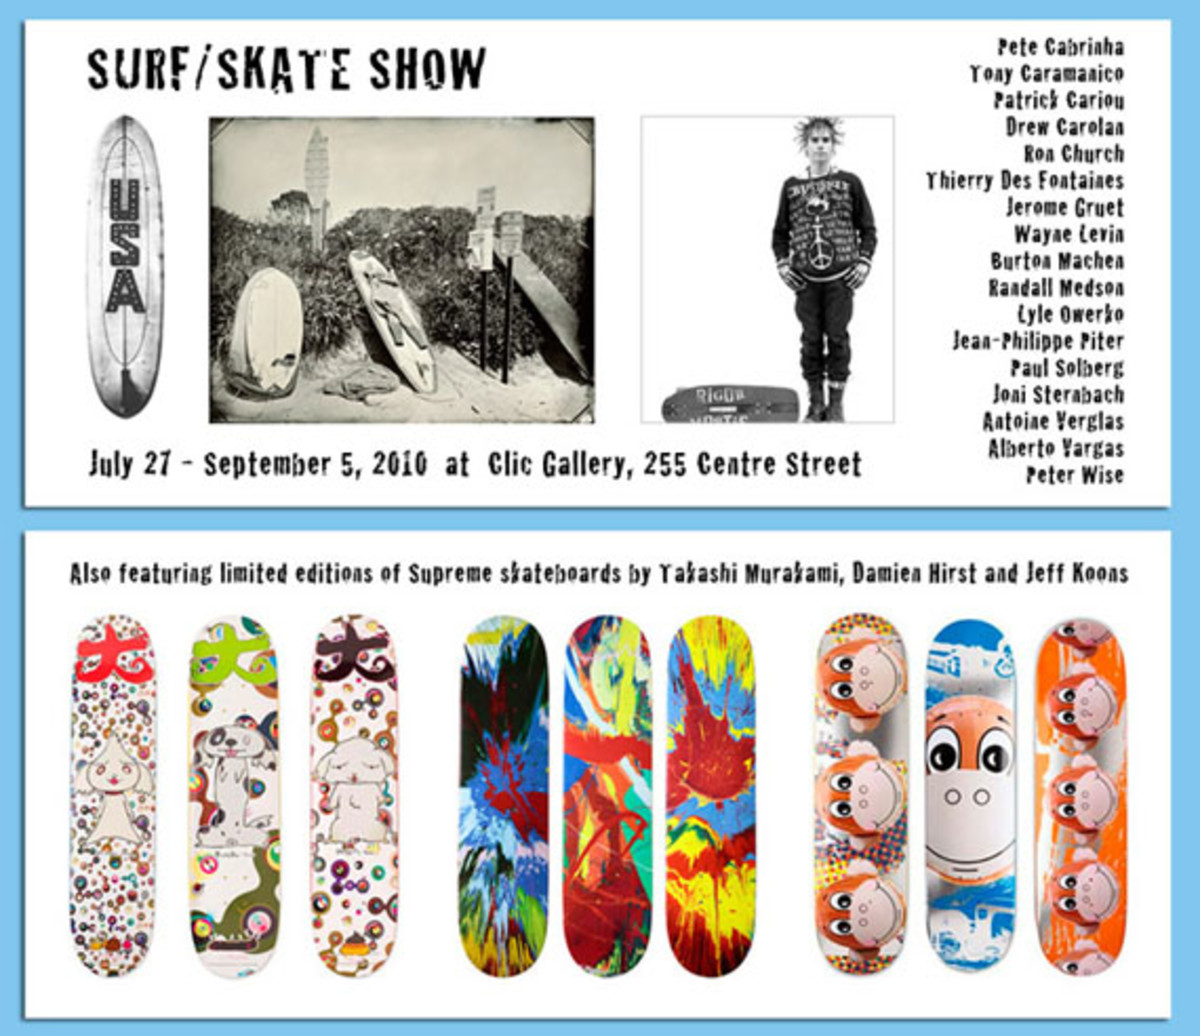 surf-skate-show-nyc-3